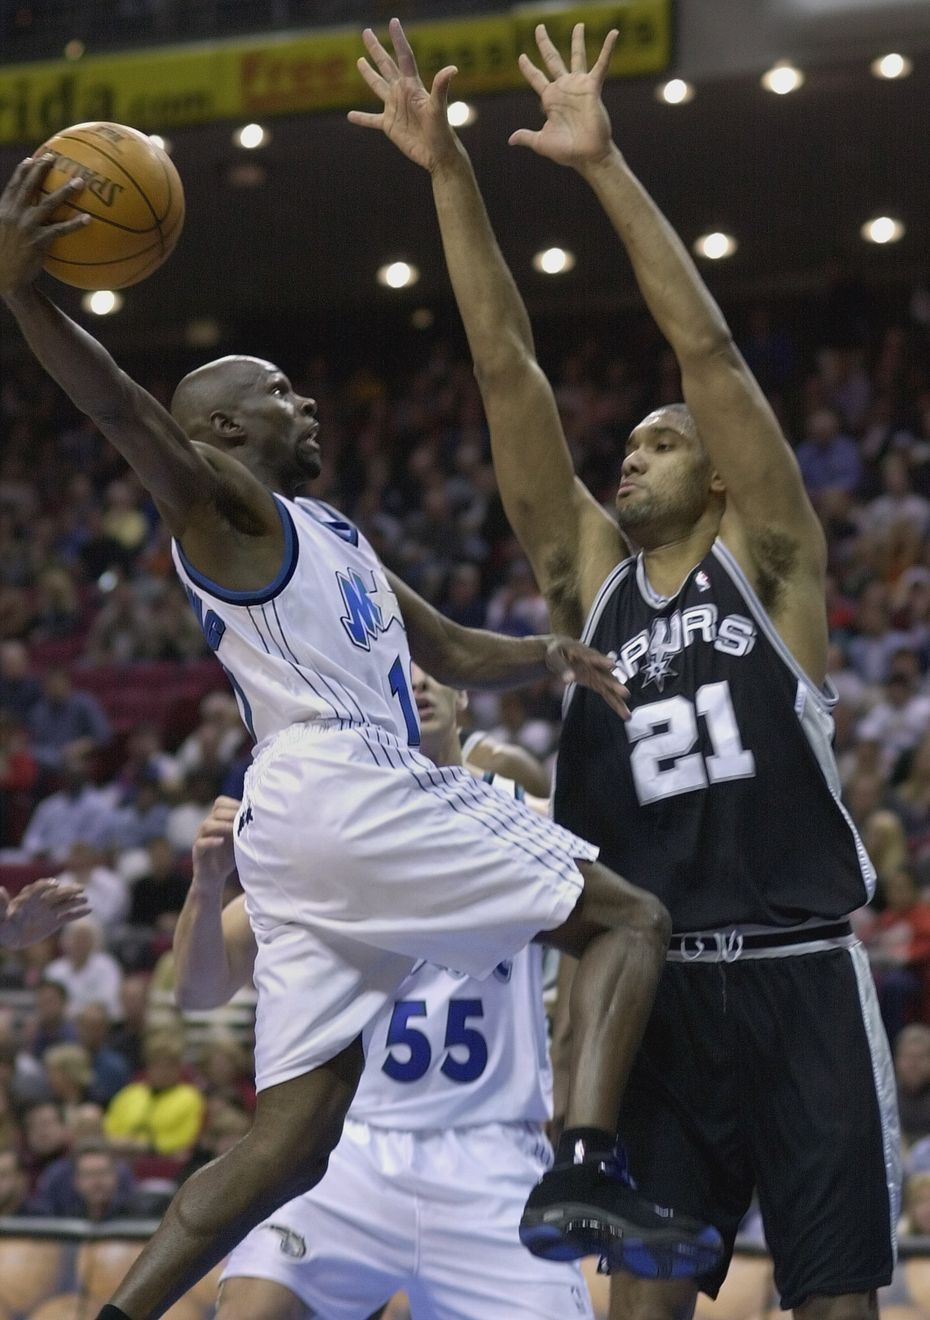 Orlando Magic's Darrell Armstrong (left) drives toward the outstretched arms of San Antonio Spurs' Tim Duncan during the first quarter in Orlando, Fla., on Tuesday, Jan. 9, 2001. Armstrong passed the ball off rather than going for the basket.